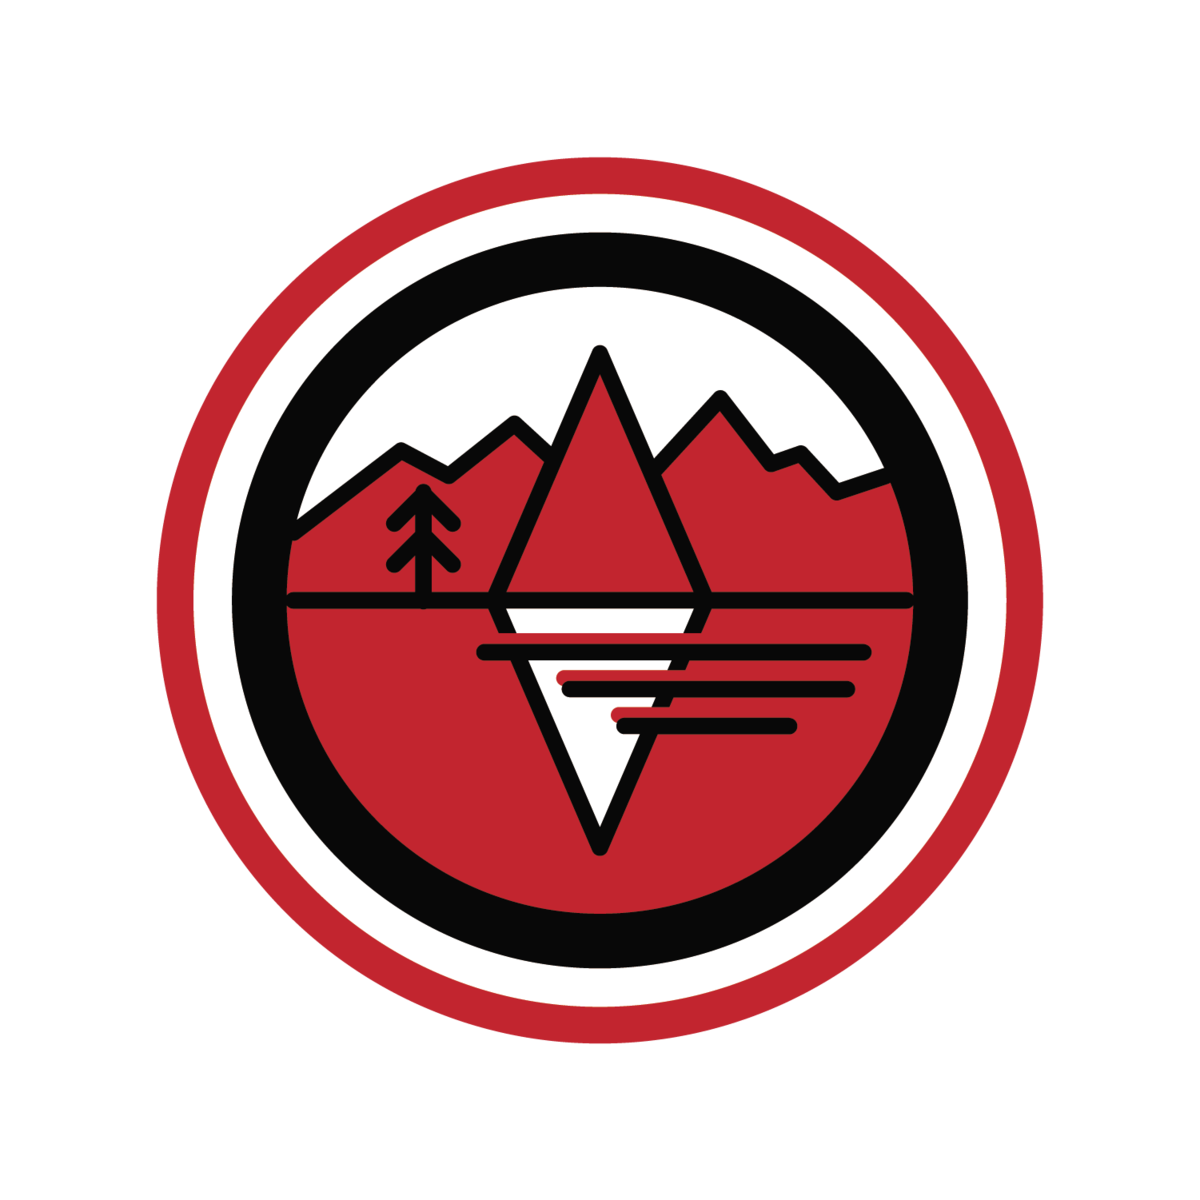 journey_icon-02.png